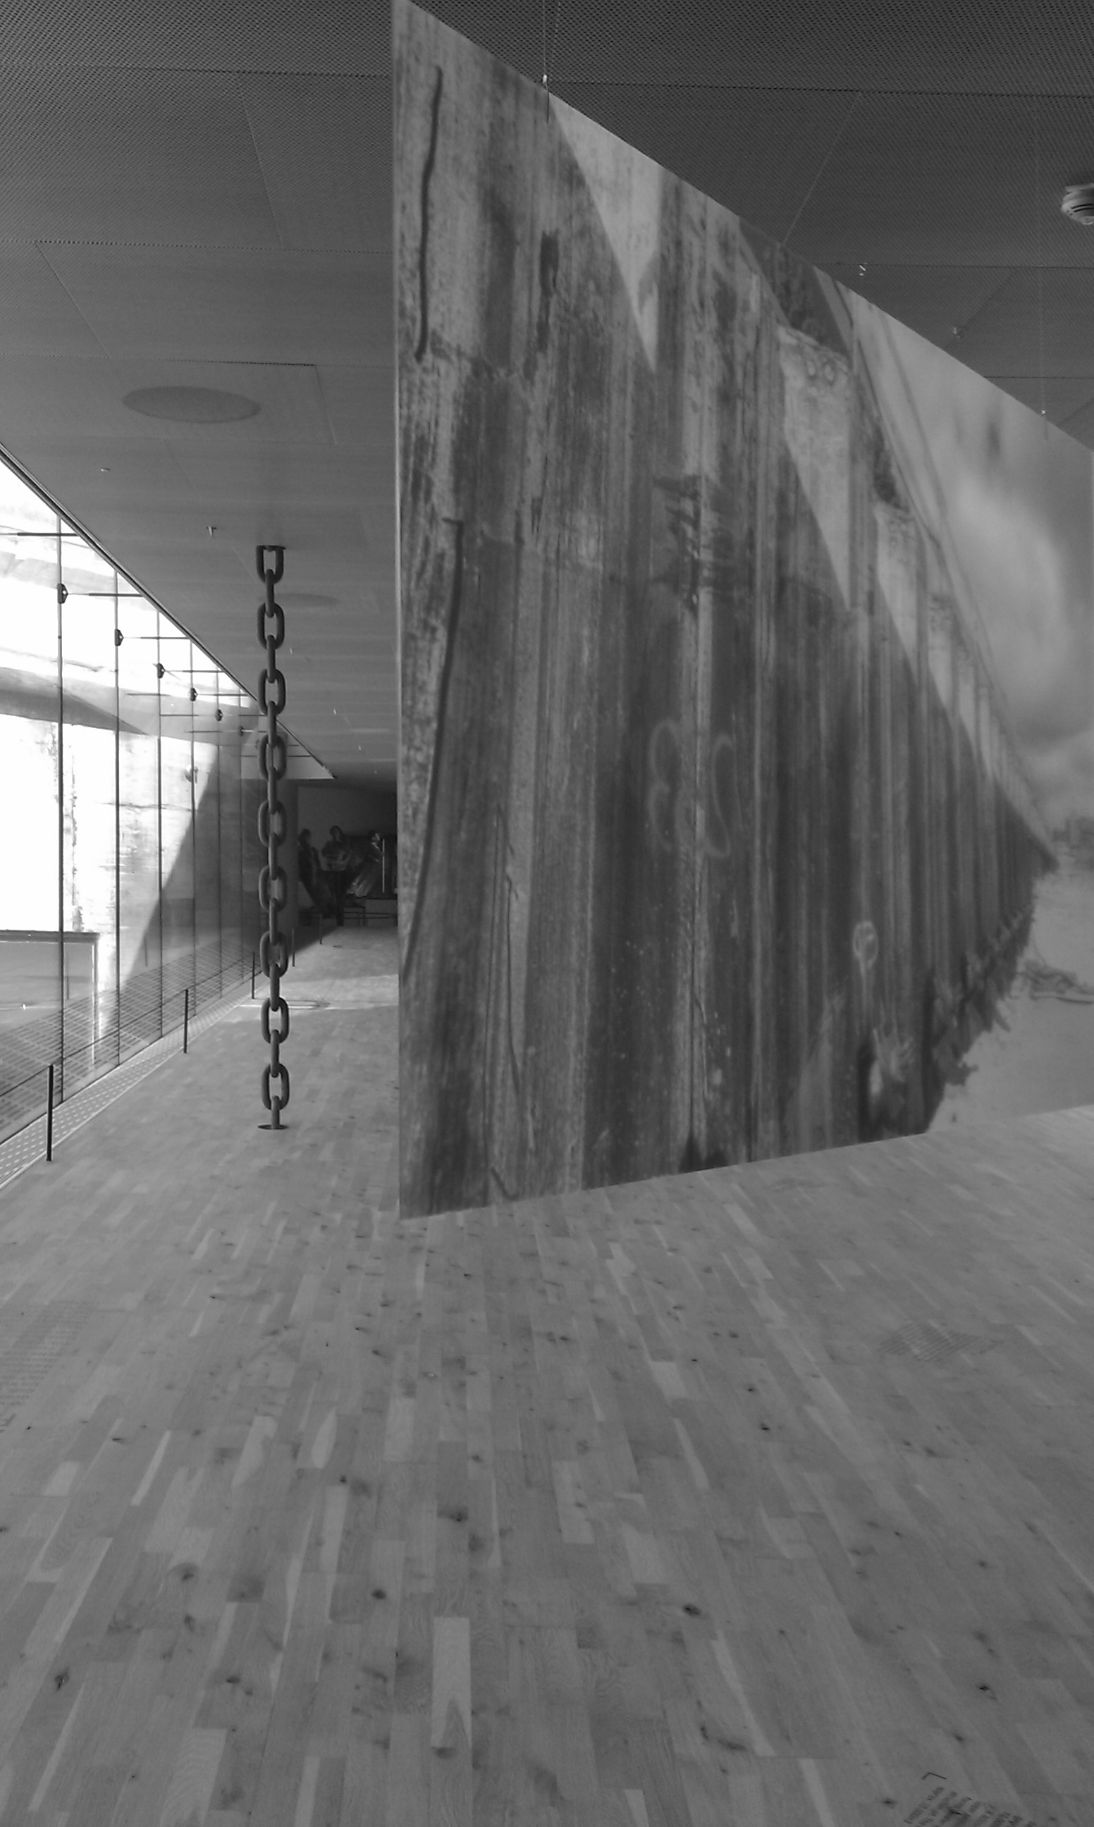 Greyscale image of glass walls, wood, concrete and chain